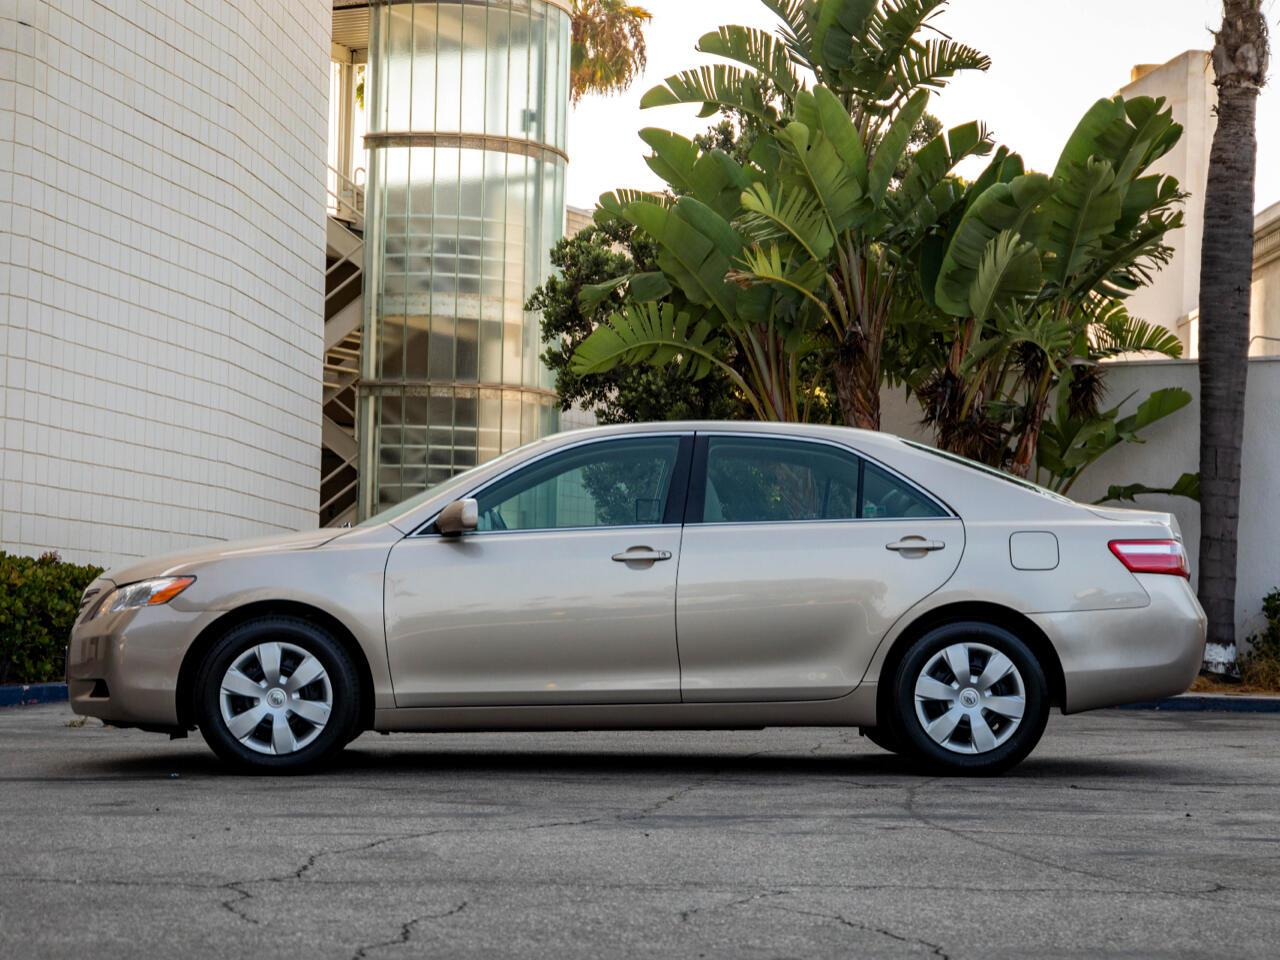 2008 Toyota Camry (CC-1387239) for sale in Marina Del Rey, California